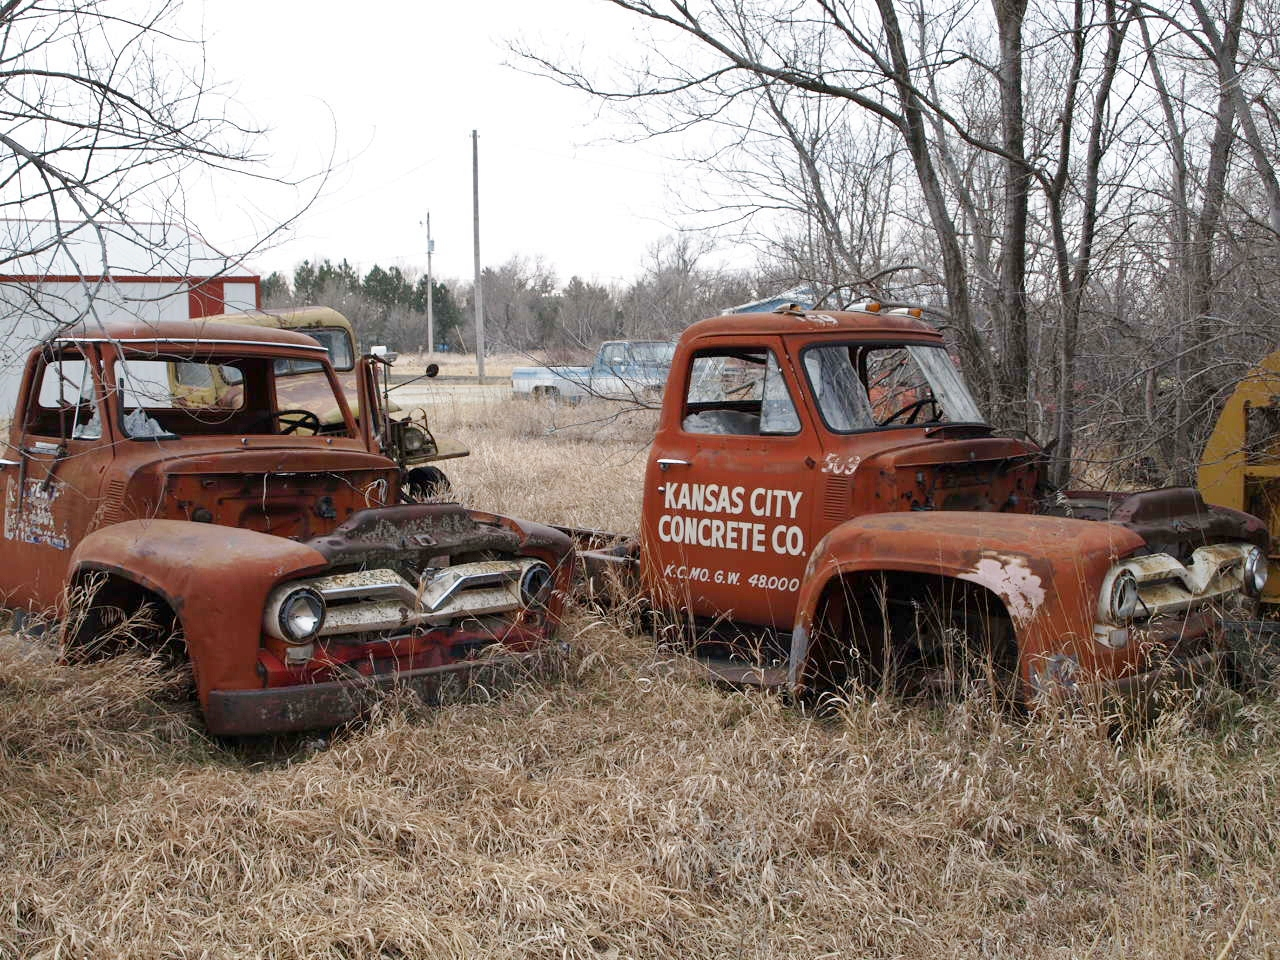 Humansville Scott Salvage Yard moreover Muscle Cars Used Parts Olds likewise Classic Car Salvage Yards moreover Classic Car Salvage Yards as well Desert Valley Auto Arizona Largest Antique Salvage Yard Car Pictures. on classic car auto salvage yards